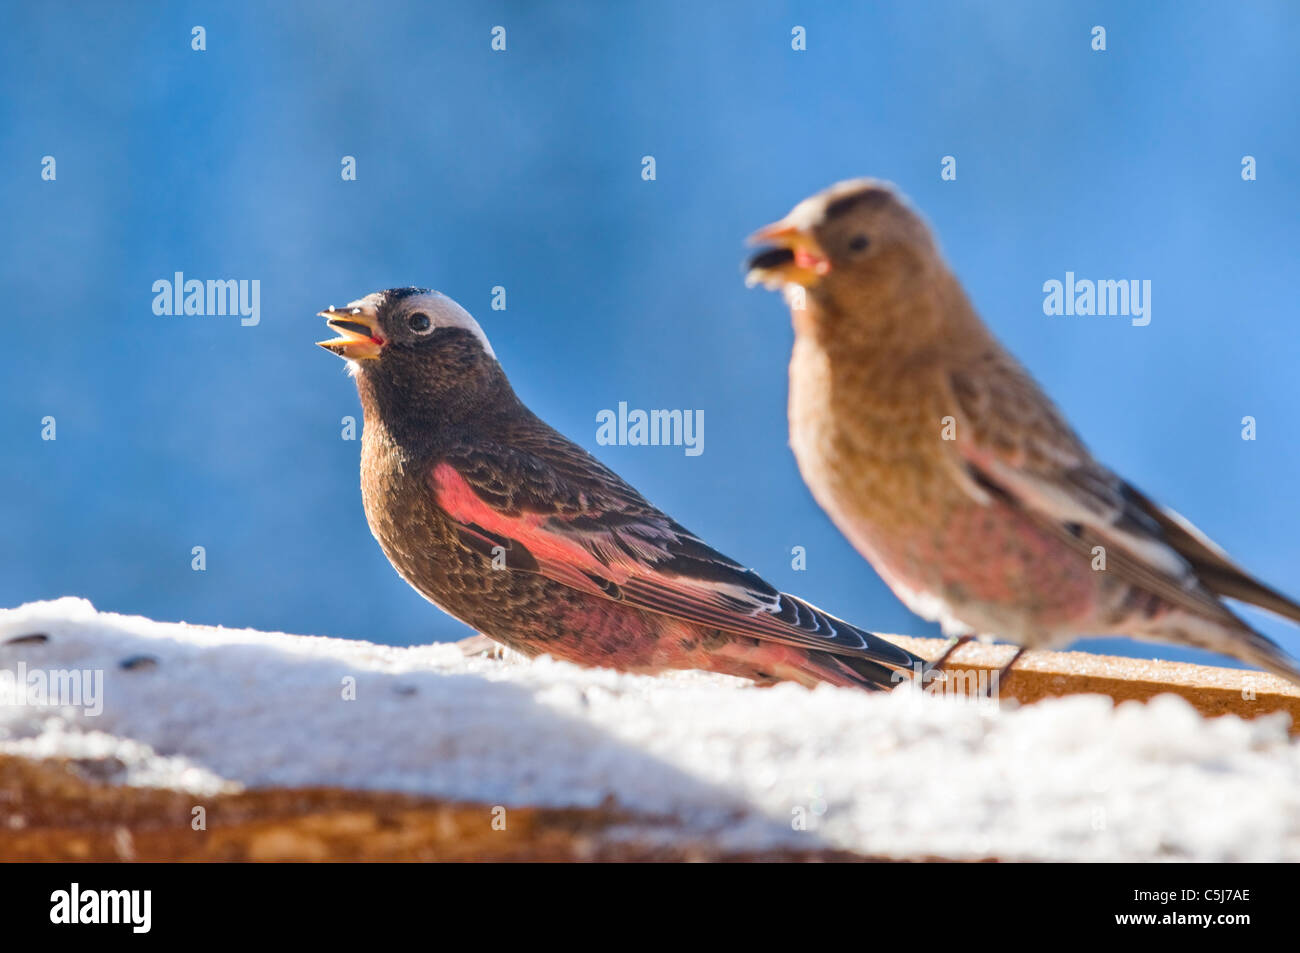 Black Rosy Finch - Stock Image